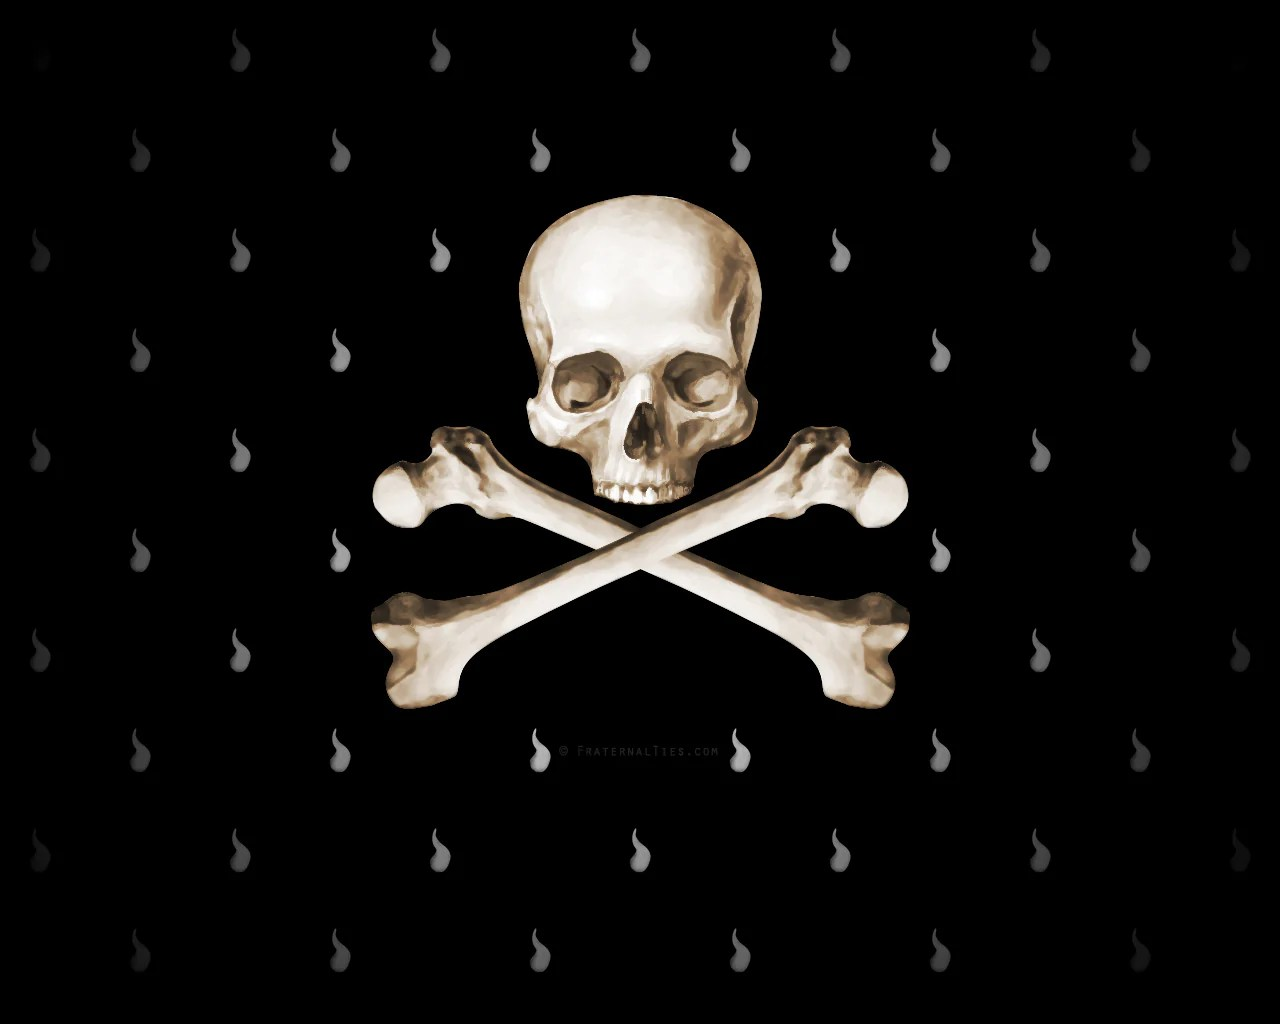 Freemason Iphone Wallpaper Memento Mori Masonic Wallpaper Fraternalties